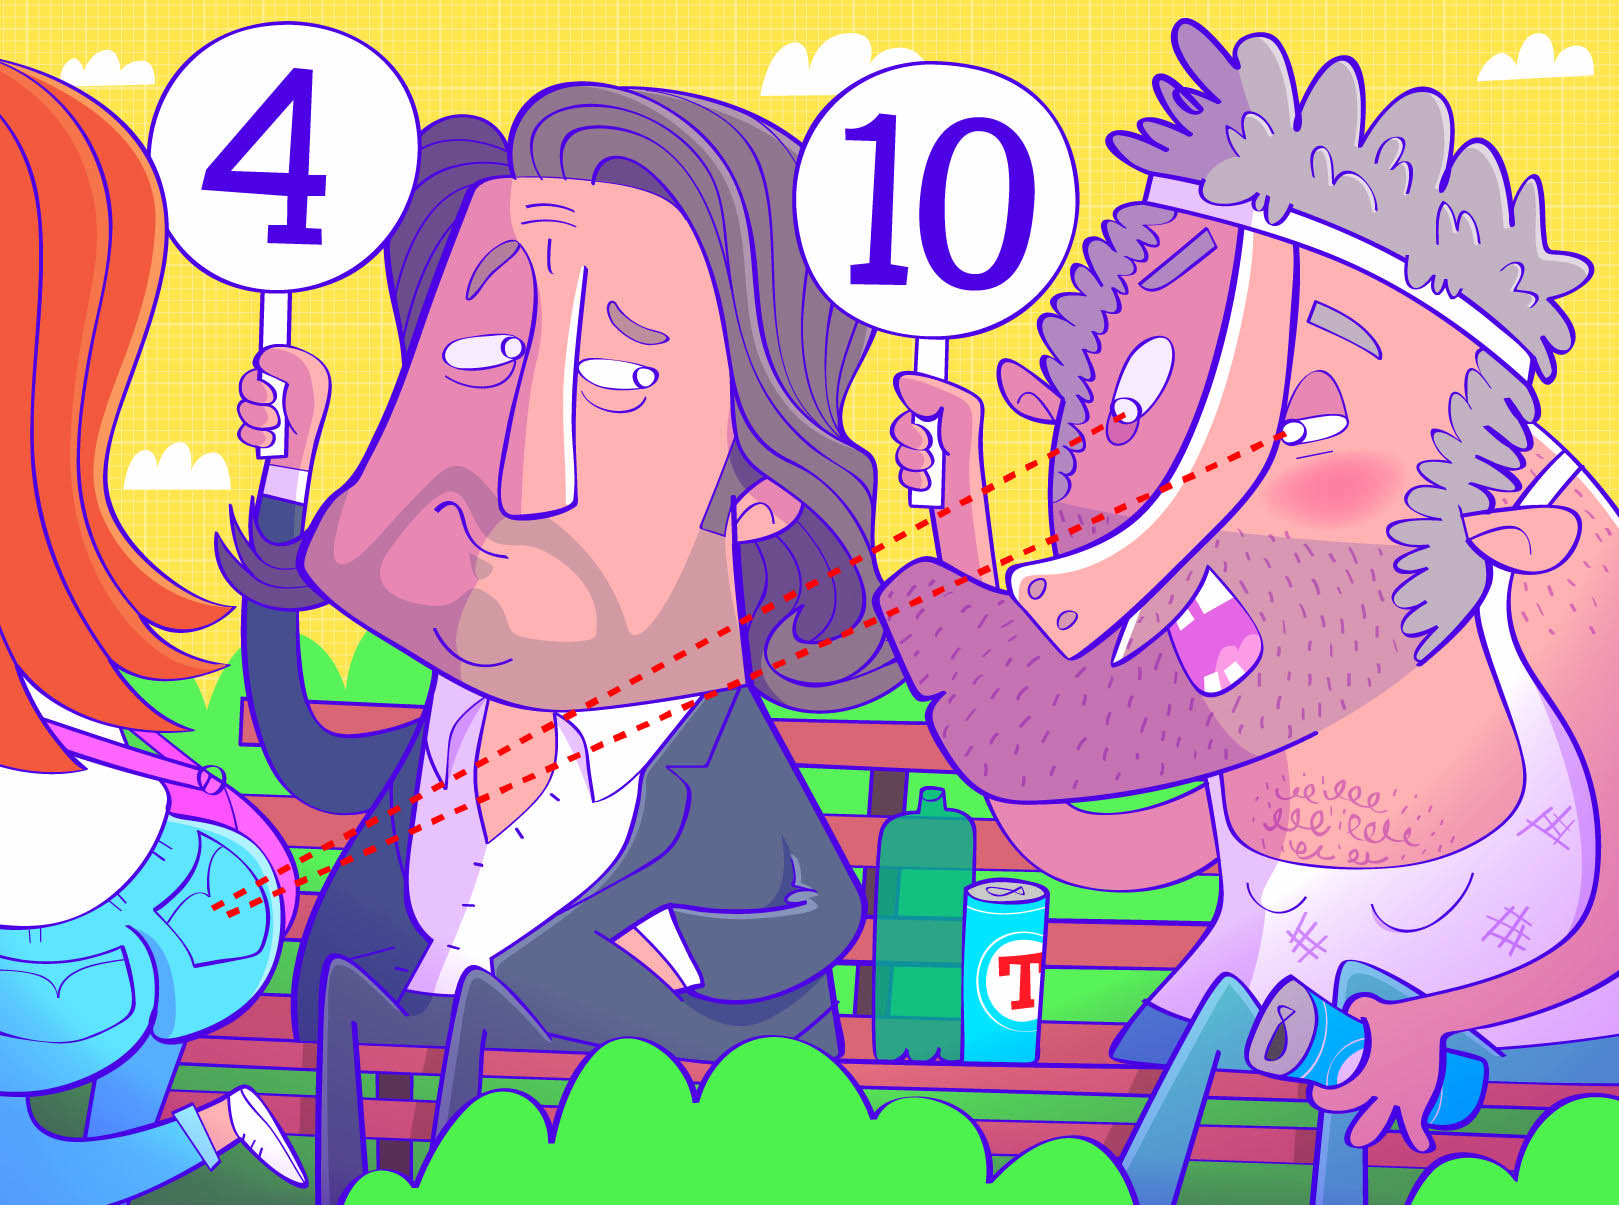 Richard Herring does not look at other people's bottoms (Picture: The Boy Fitz Hammond/NB Illustration)